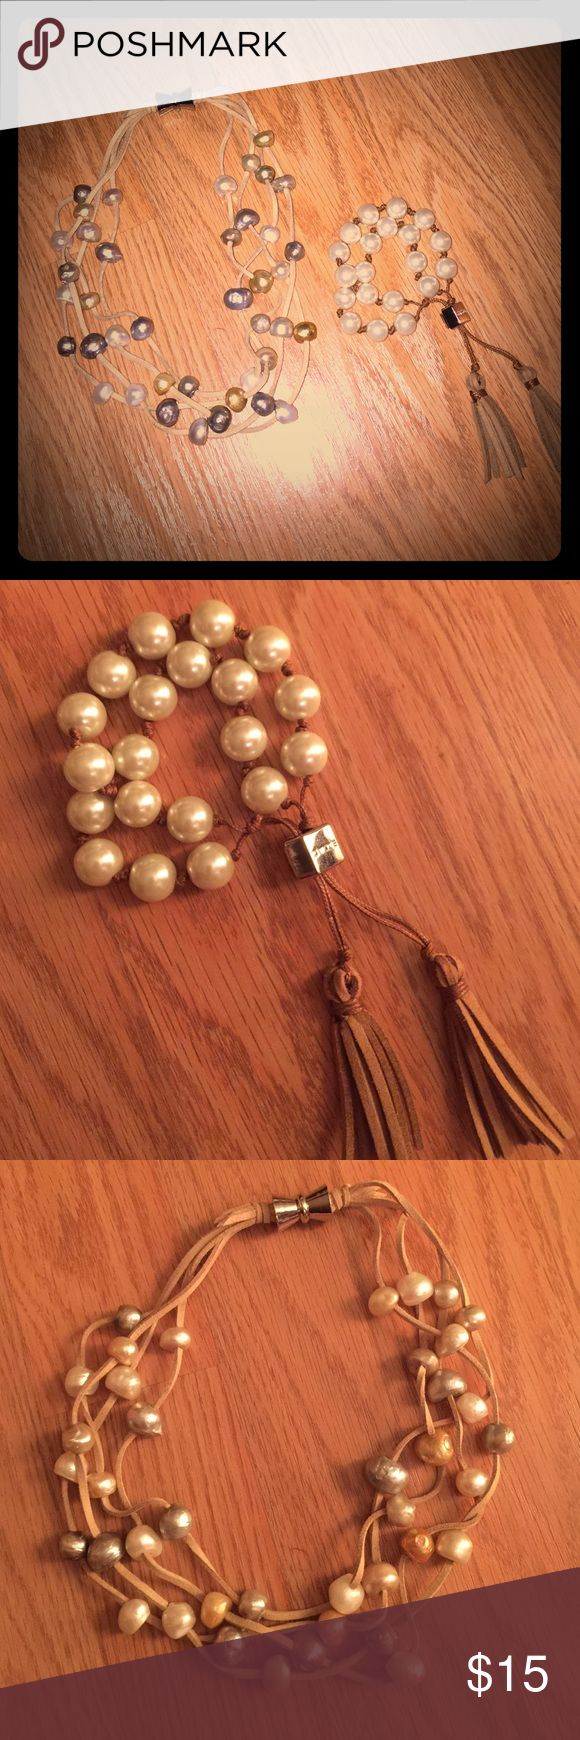 Leather & Pearl Necklace & Bracelet Set From Chicos, never worn. Multi stranded pearl necklace on leather strands. Matching double pearl & leather bracelet. Chico's Jewelry Necklaces